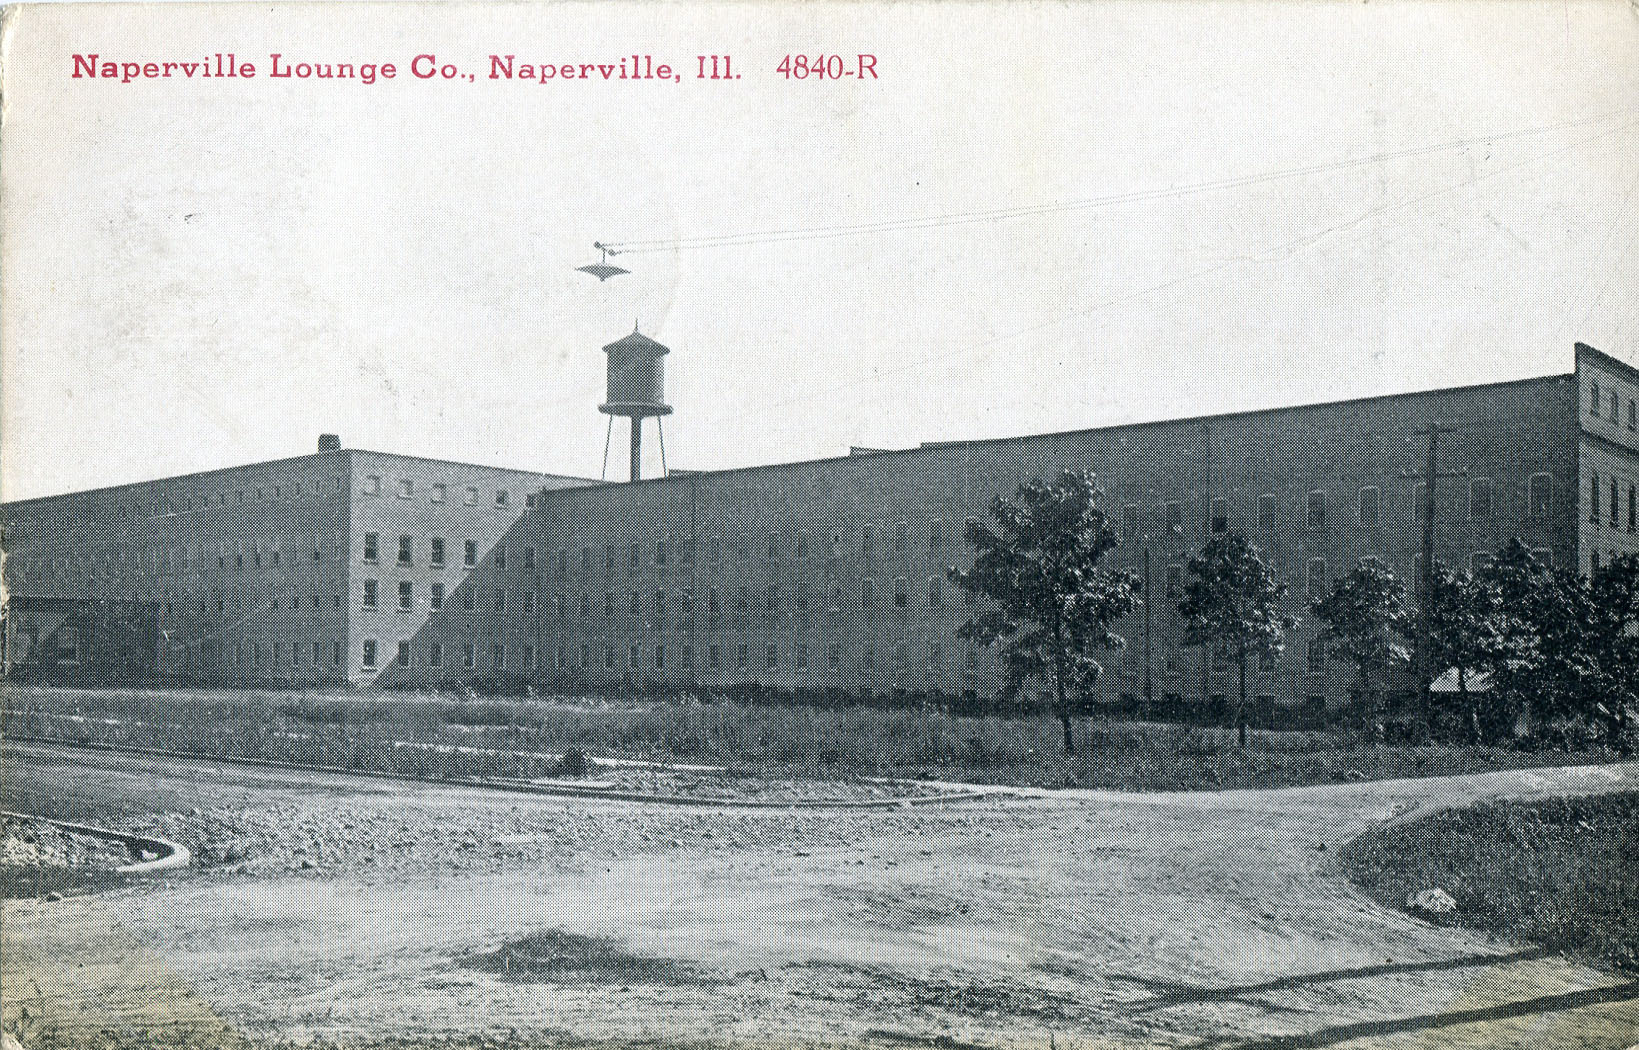 Naperville Lounge Company postcard